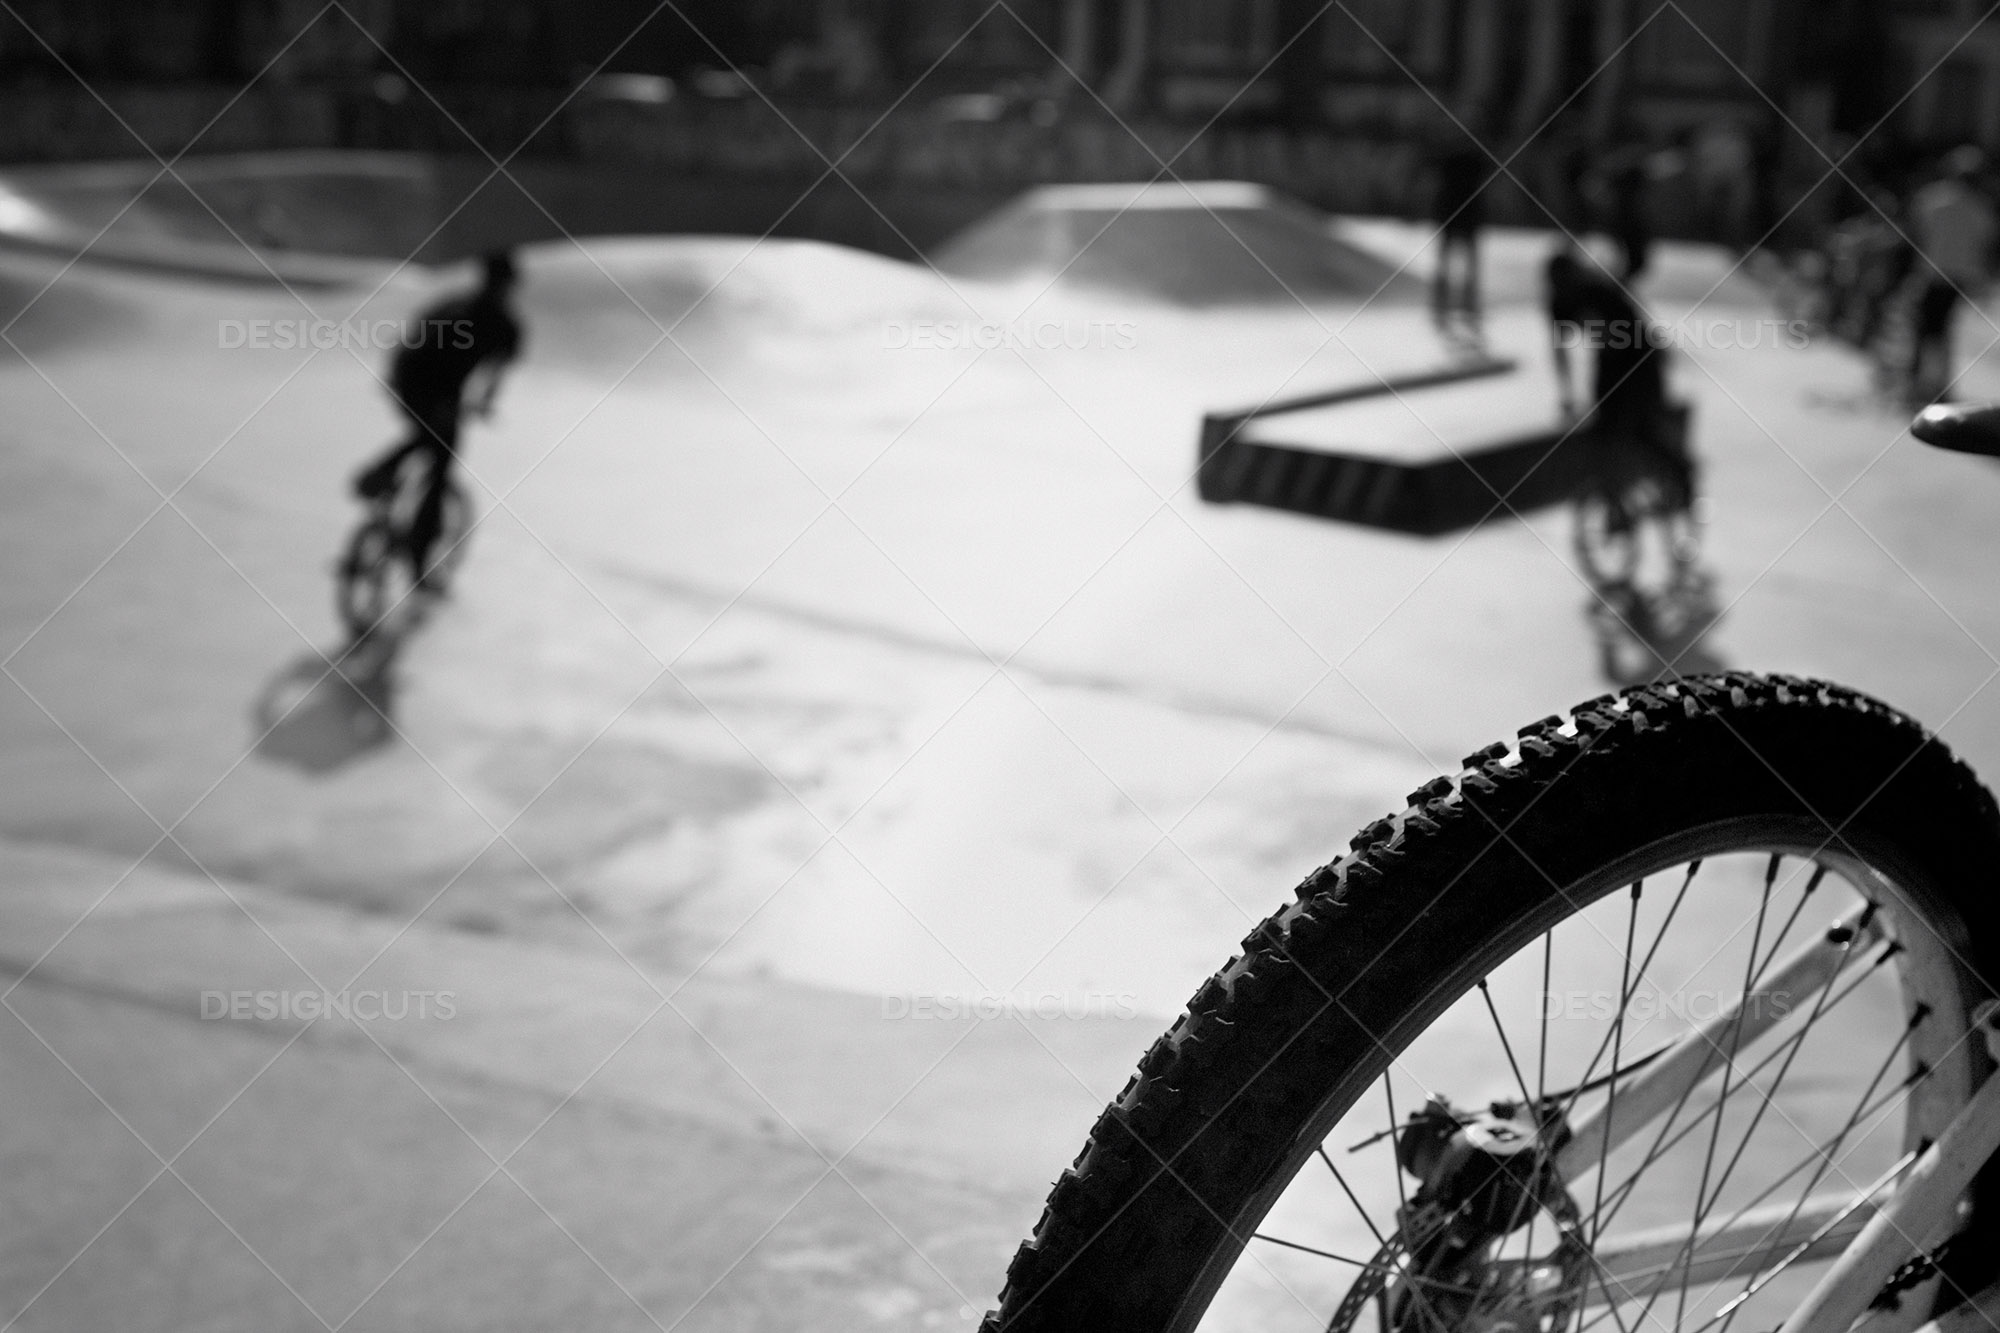 Bike Wheel With Skatepark Out Of Focus In Background